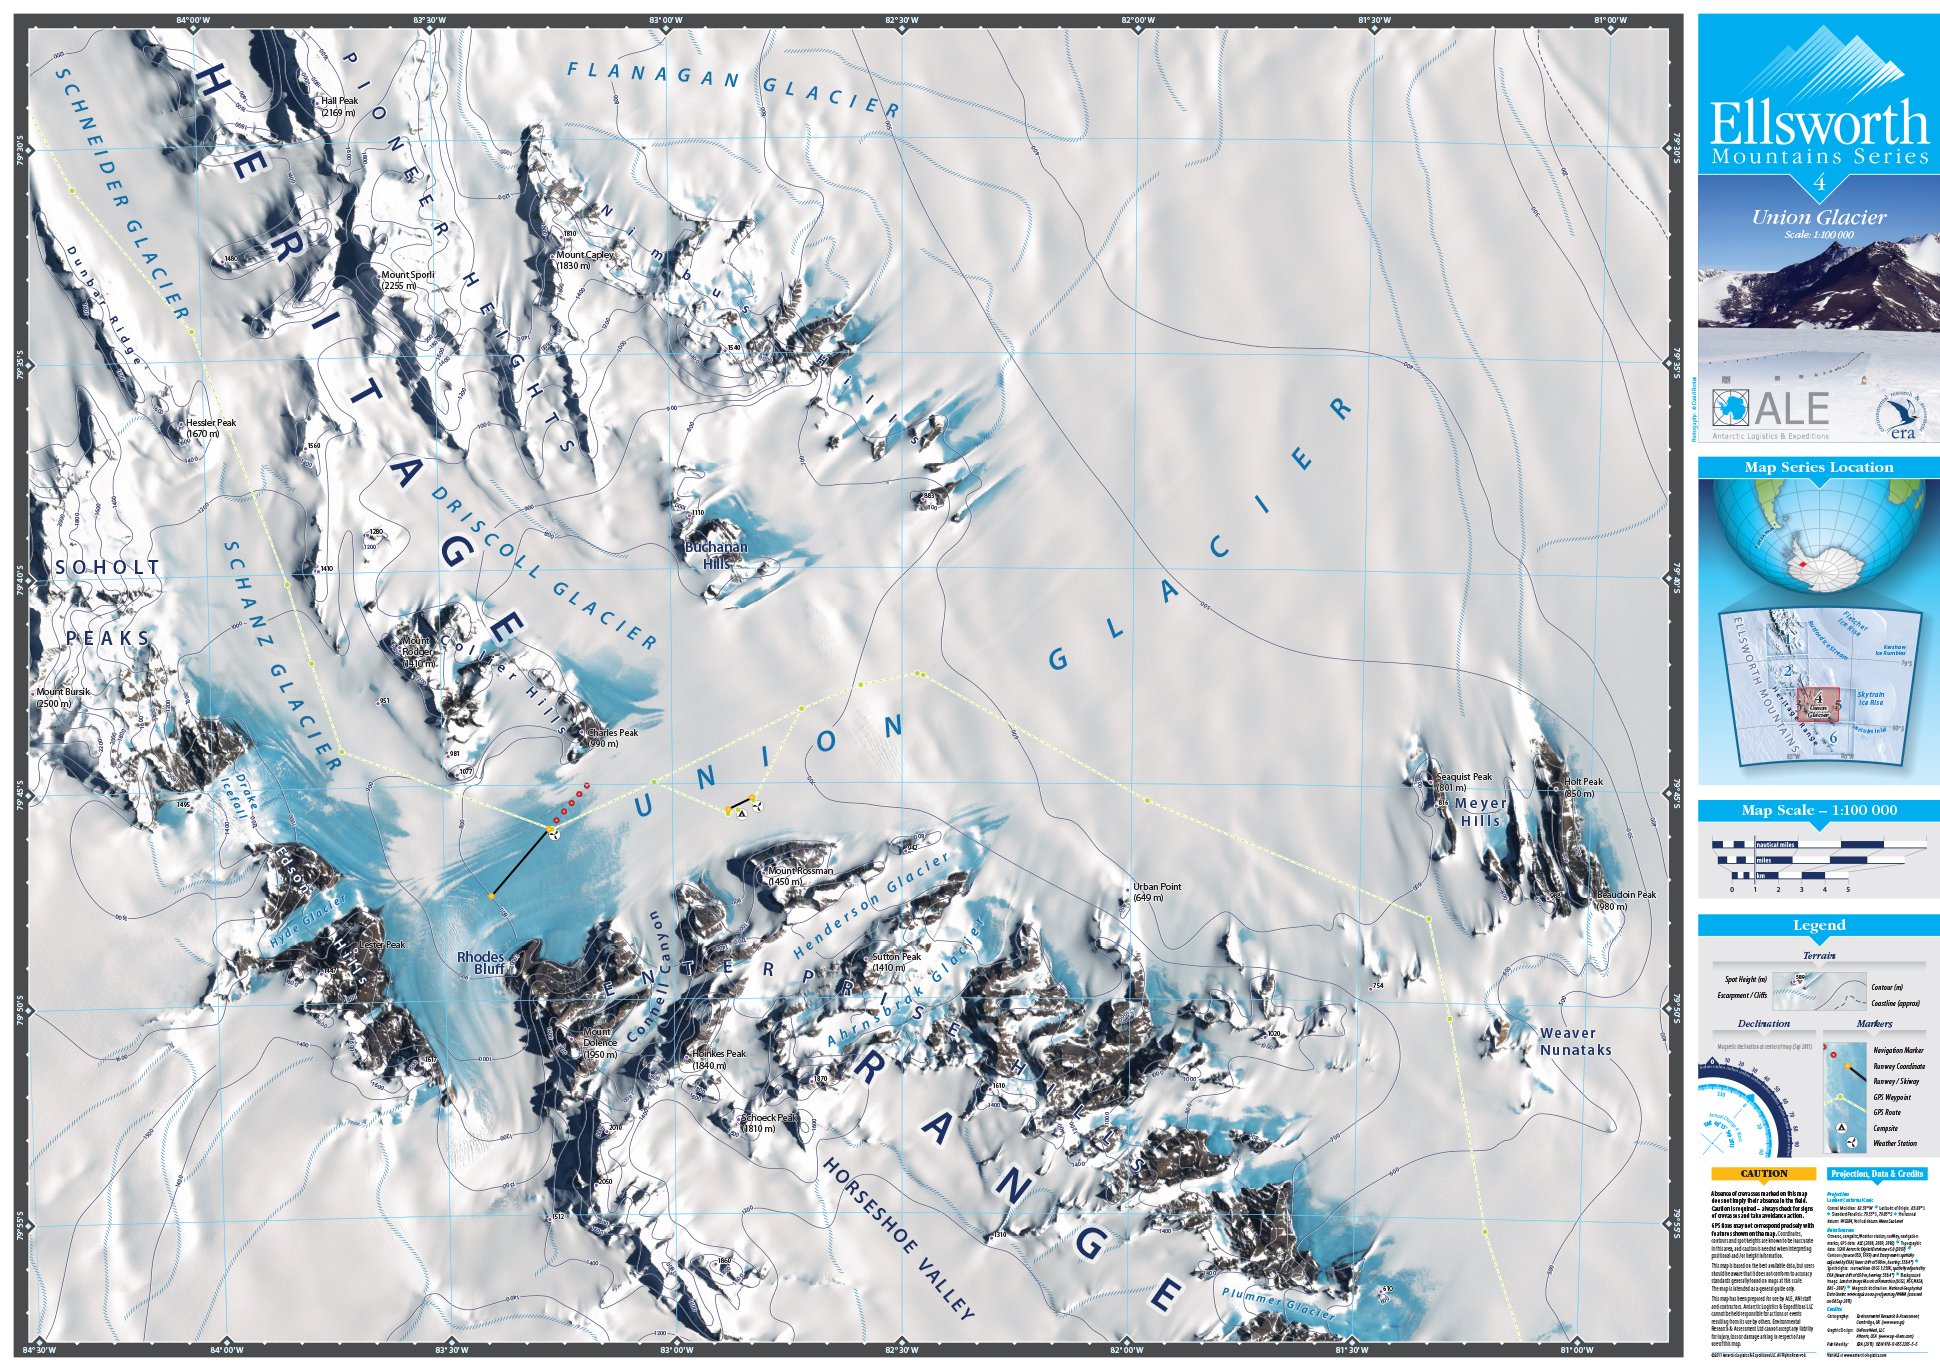 MAP DESIGN - Antarctic Logistics & Expeditions | Ellsworth Mountain Map Series | 4 Union Glacier - ©UnParalleled, LLC dba UP-Ideas / Roger Sawhill / Mark Braught - Atlanta, Georgia | Lawrenceville, Georgia | Commerce, Georgia